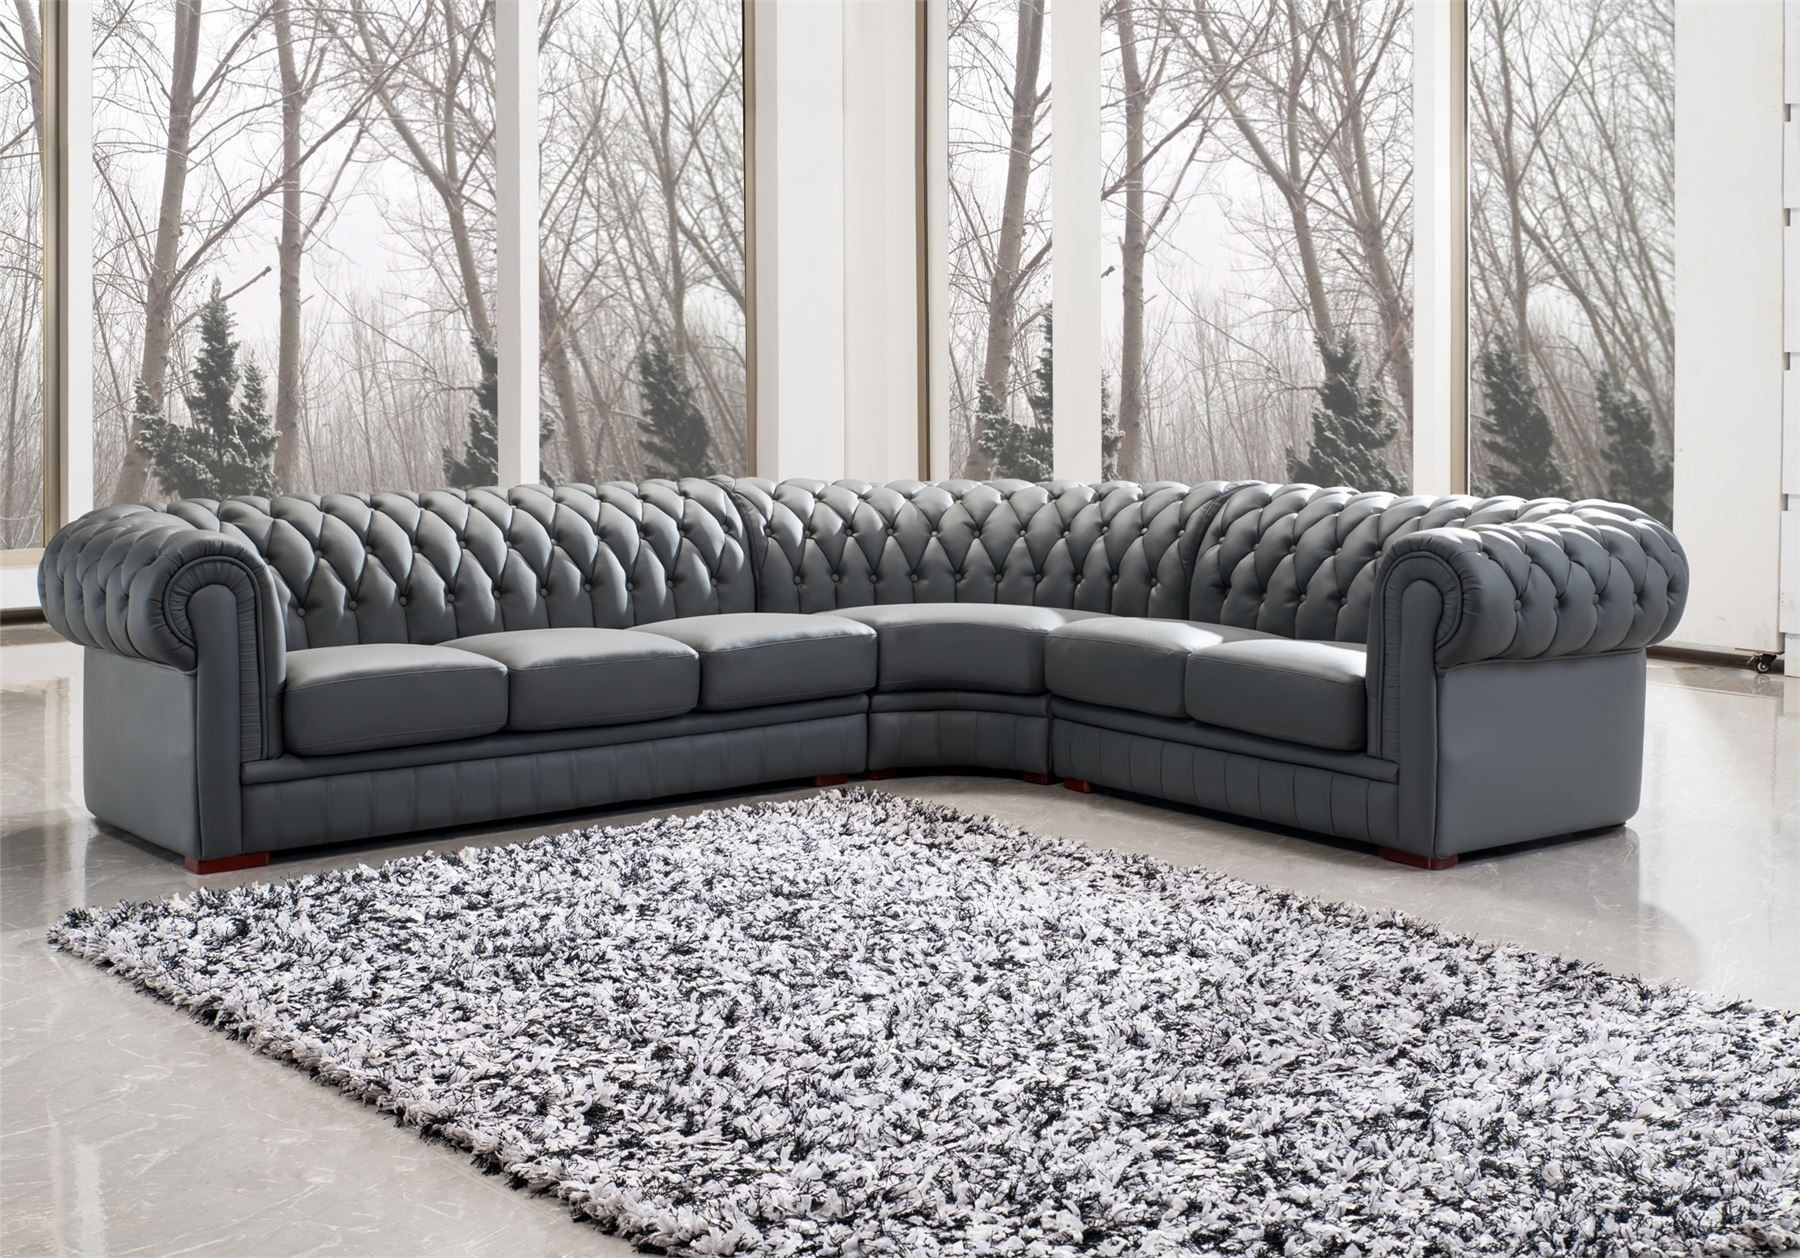 Amazing Leather Sectional Sofa Atlanta 41 About Remodel With Leather Pertaining To Sectional Sofas At Atlanta (View 2 of 15)